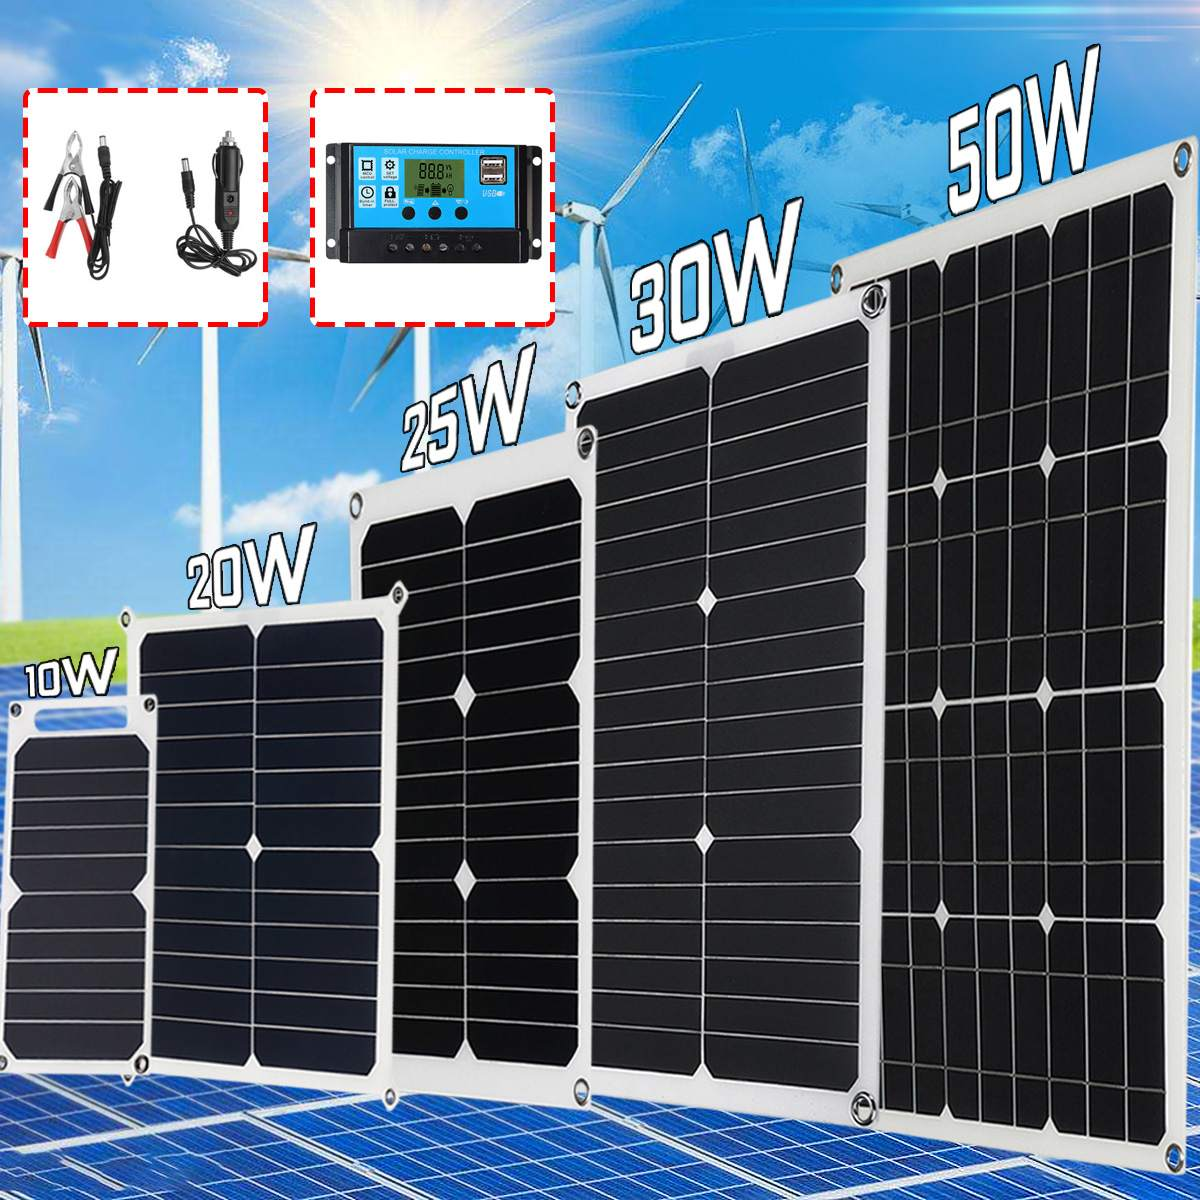 10W 20W 30W 50W 5V 12V 18V Solar Panel Solar Cells Waterproof Poly Solar Panel Battery Controller For Motorhome Car Yacht Boat